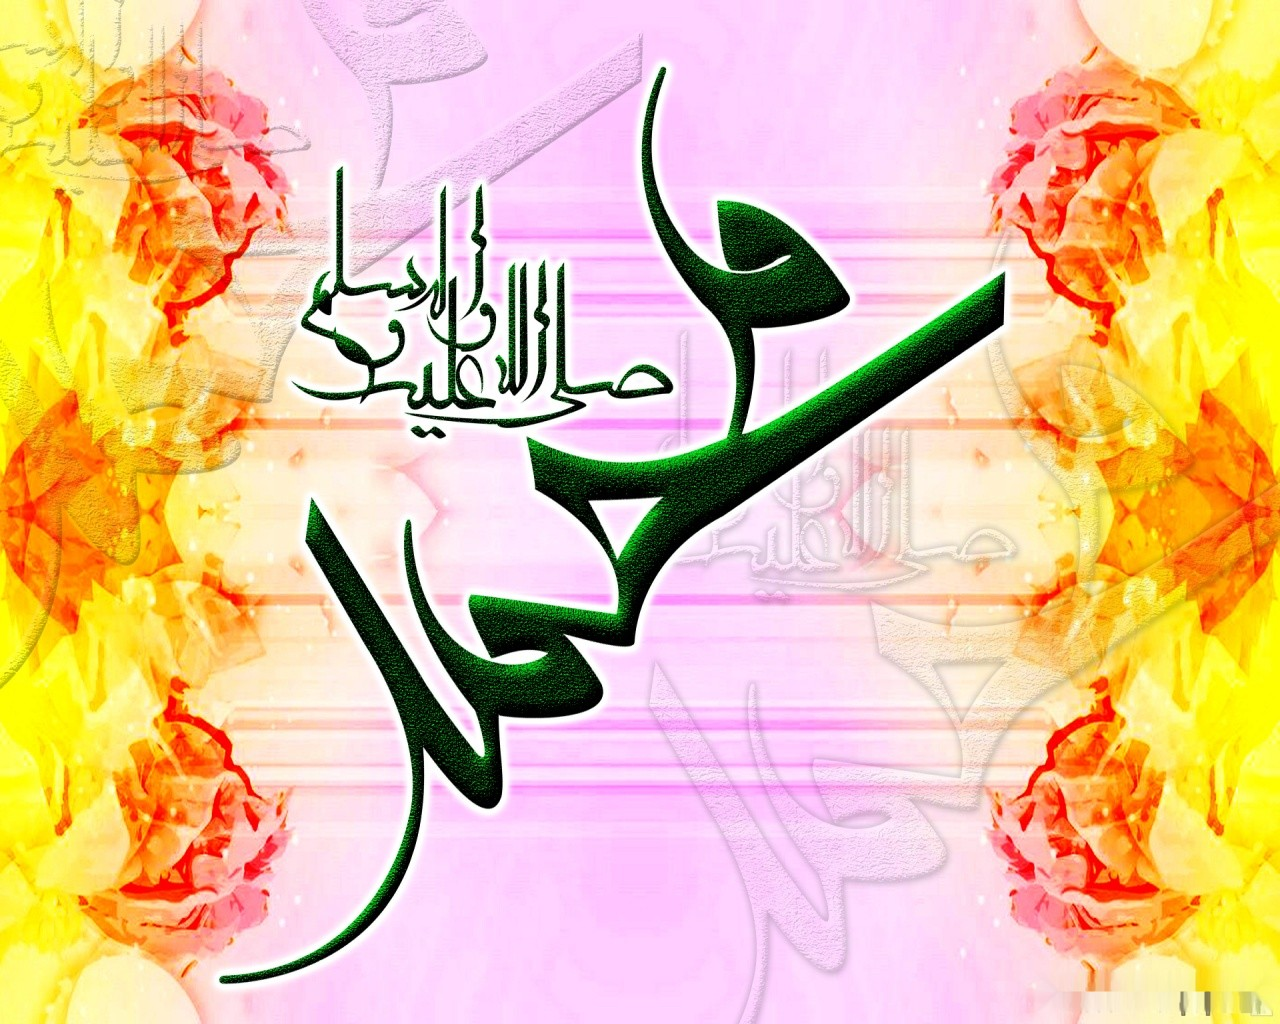 http://3.bp.blogspot.com/-FhpHAIDgZak/UOFcgcvO8mI/AAAAAAAAHrY/ck7aPGNsaP4/s1600/latest_top_hd_name_of_muhammad_pbuh-1280x1024+(madaniwallpaper.blogspot.com).jpg